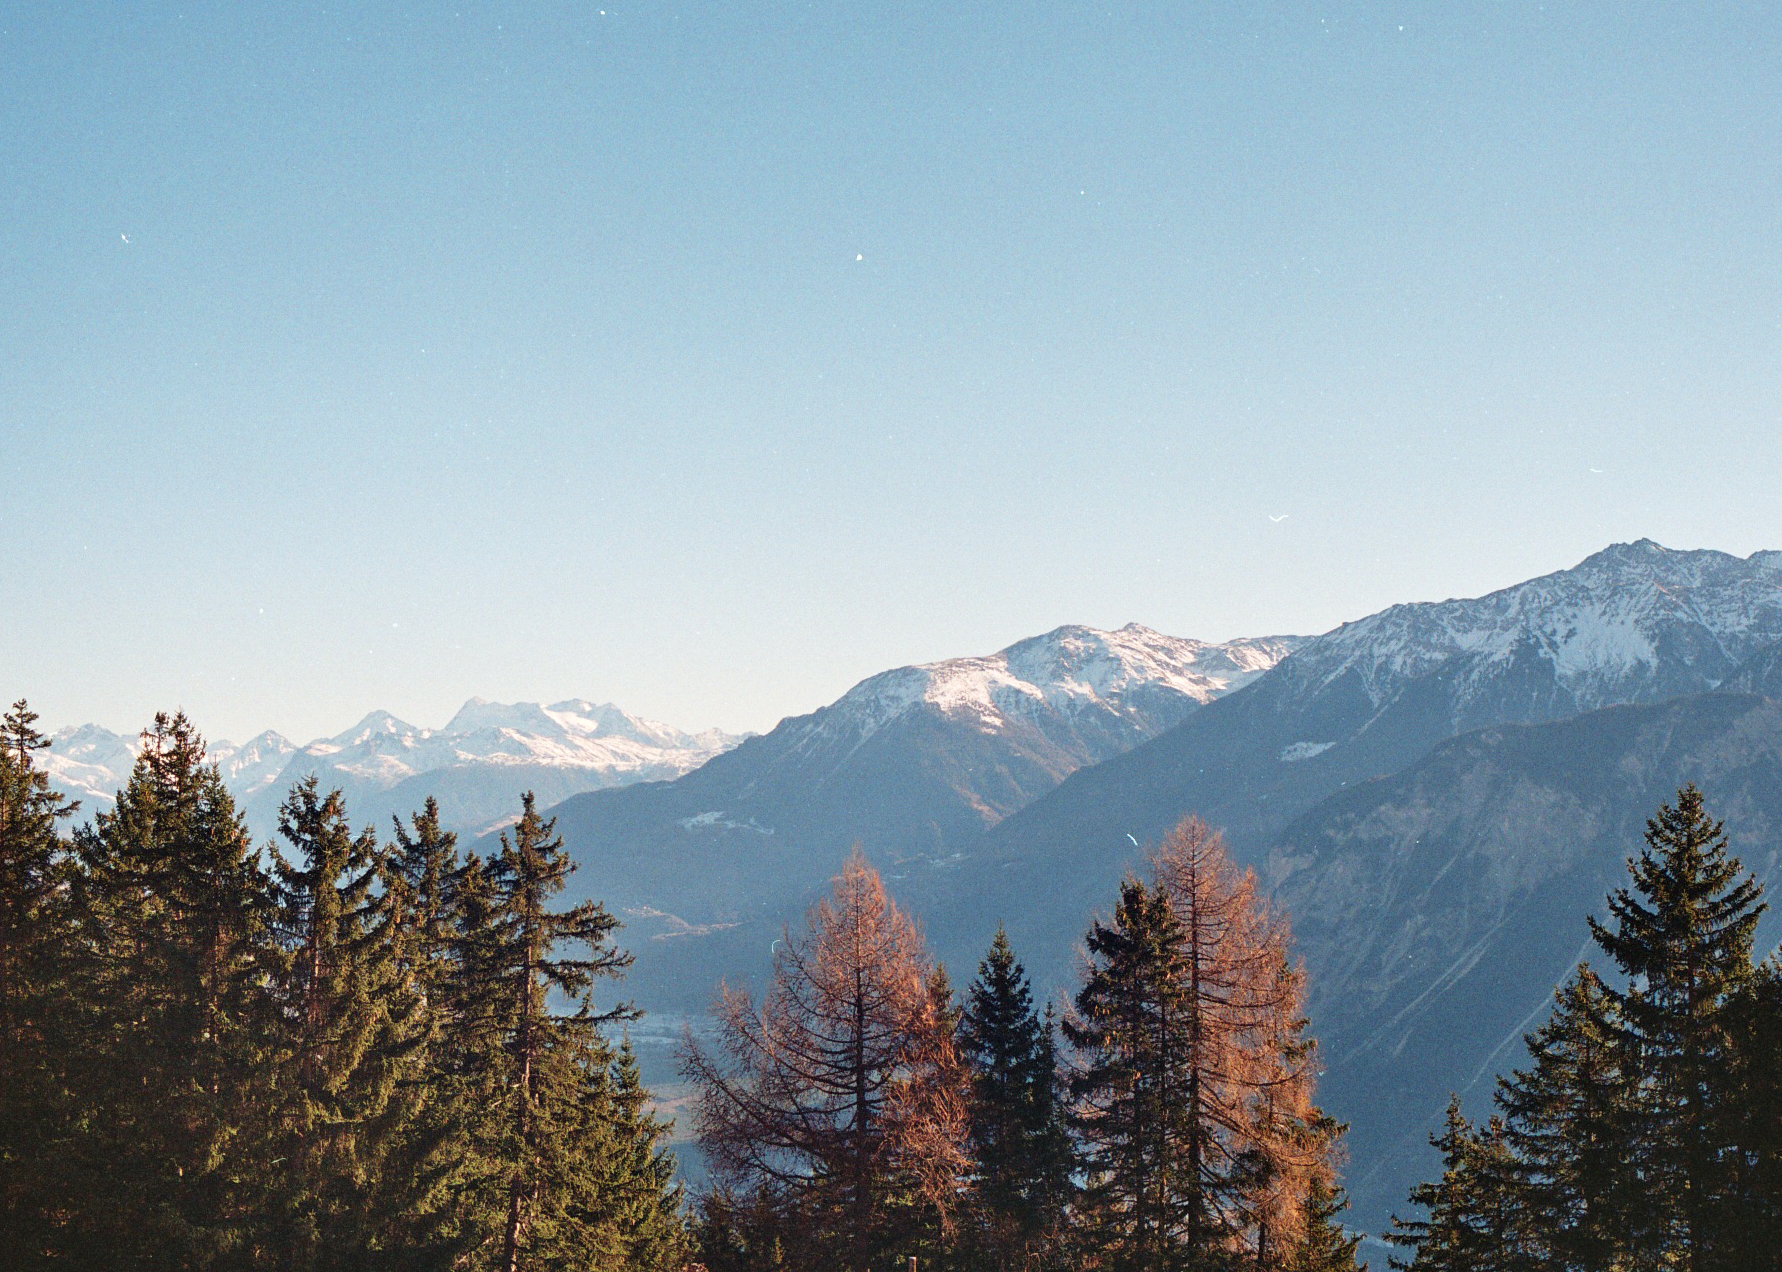 Swiss Alps by Olivia Bossert